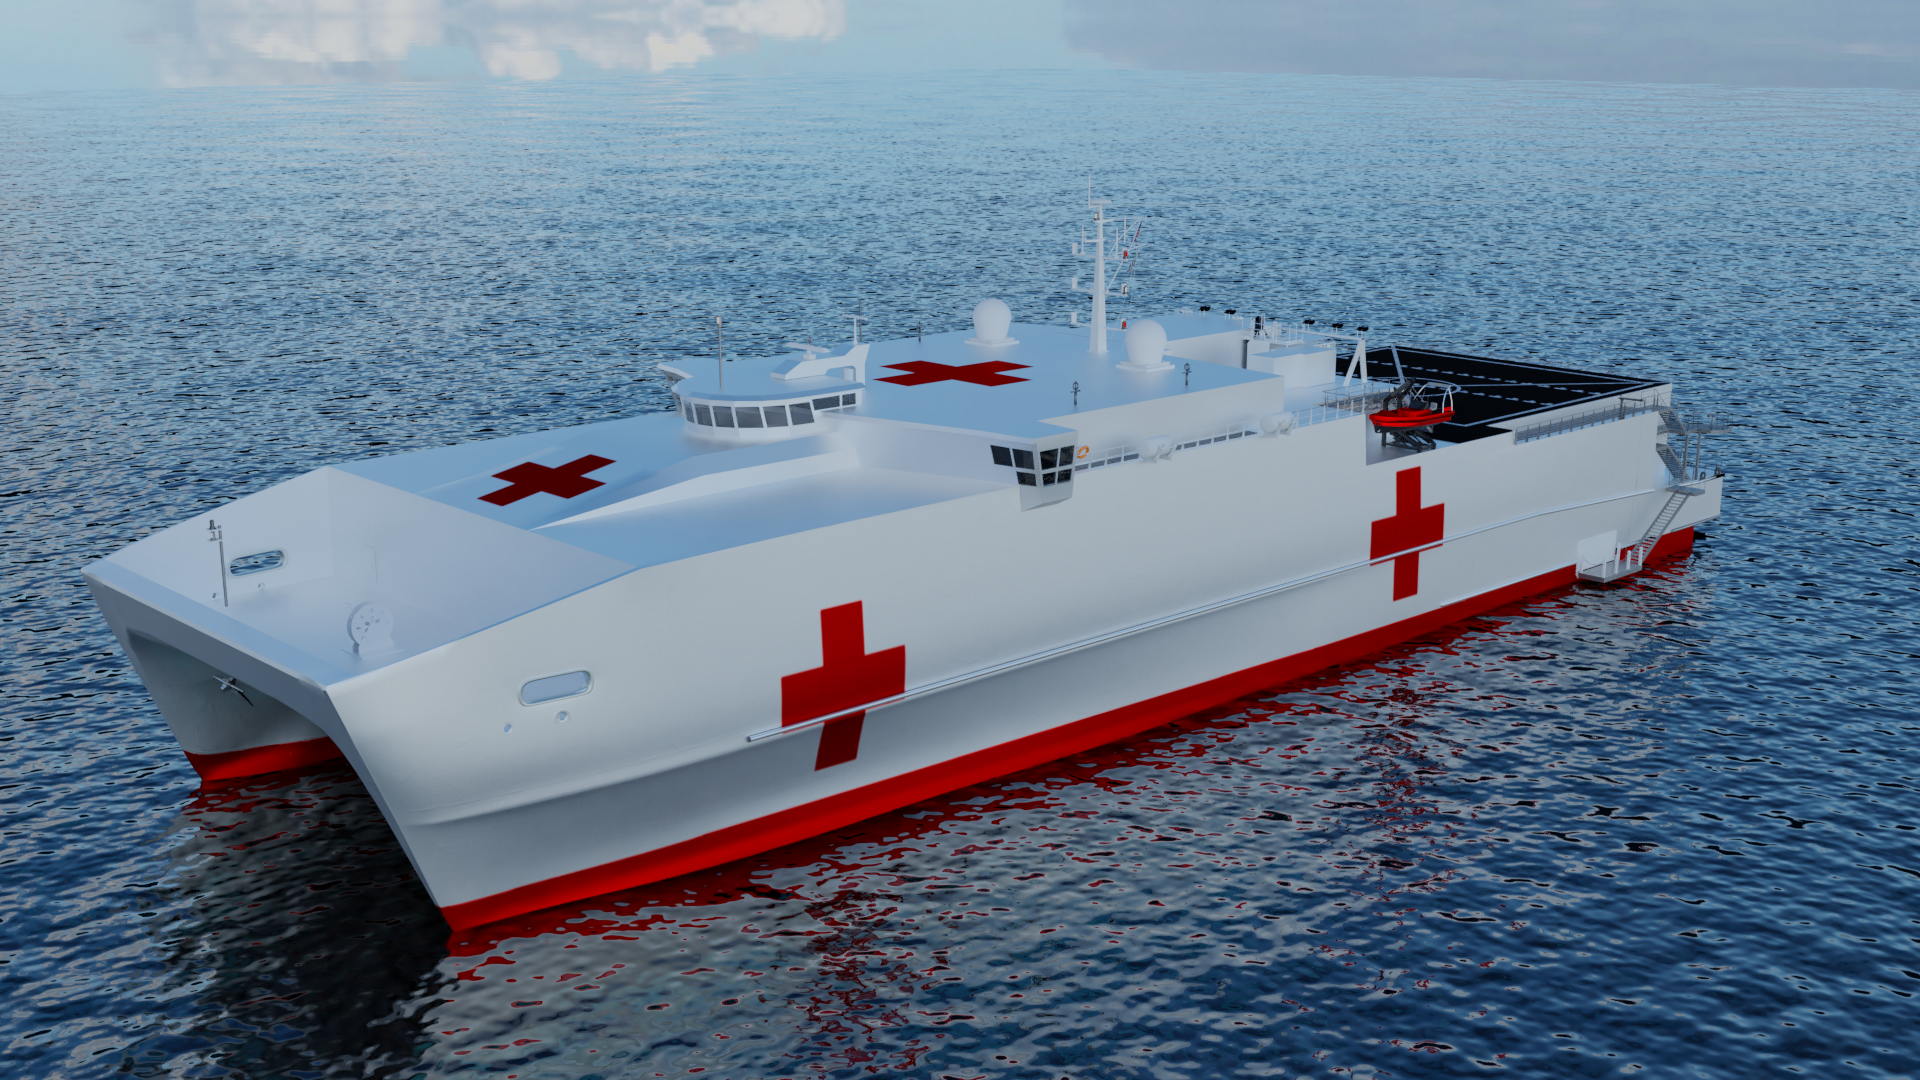 Austal Counting on LCS and EPF Demand to Boost FY 2020 Earnings